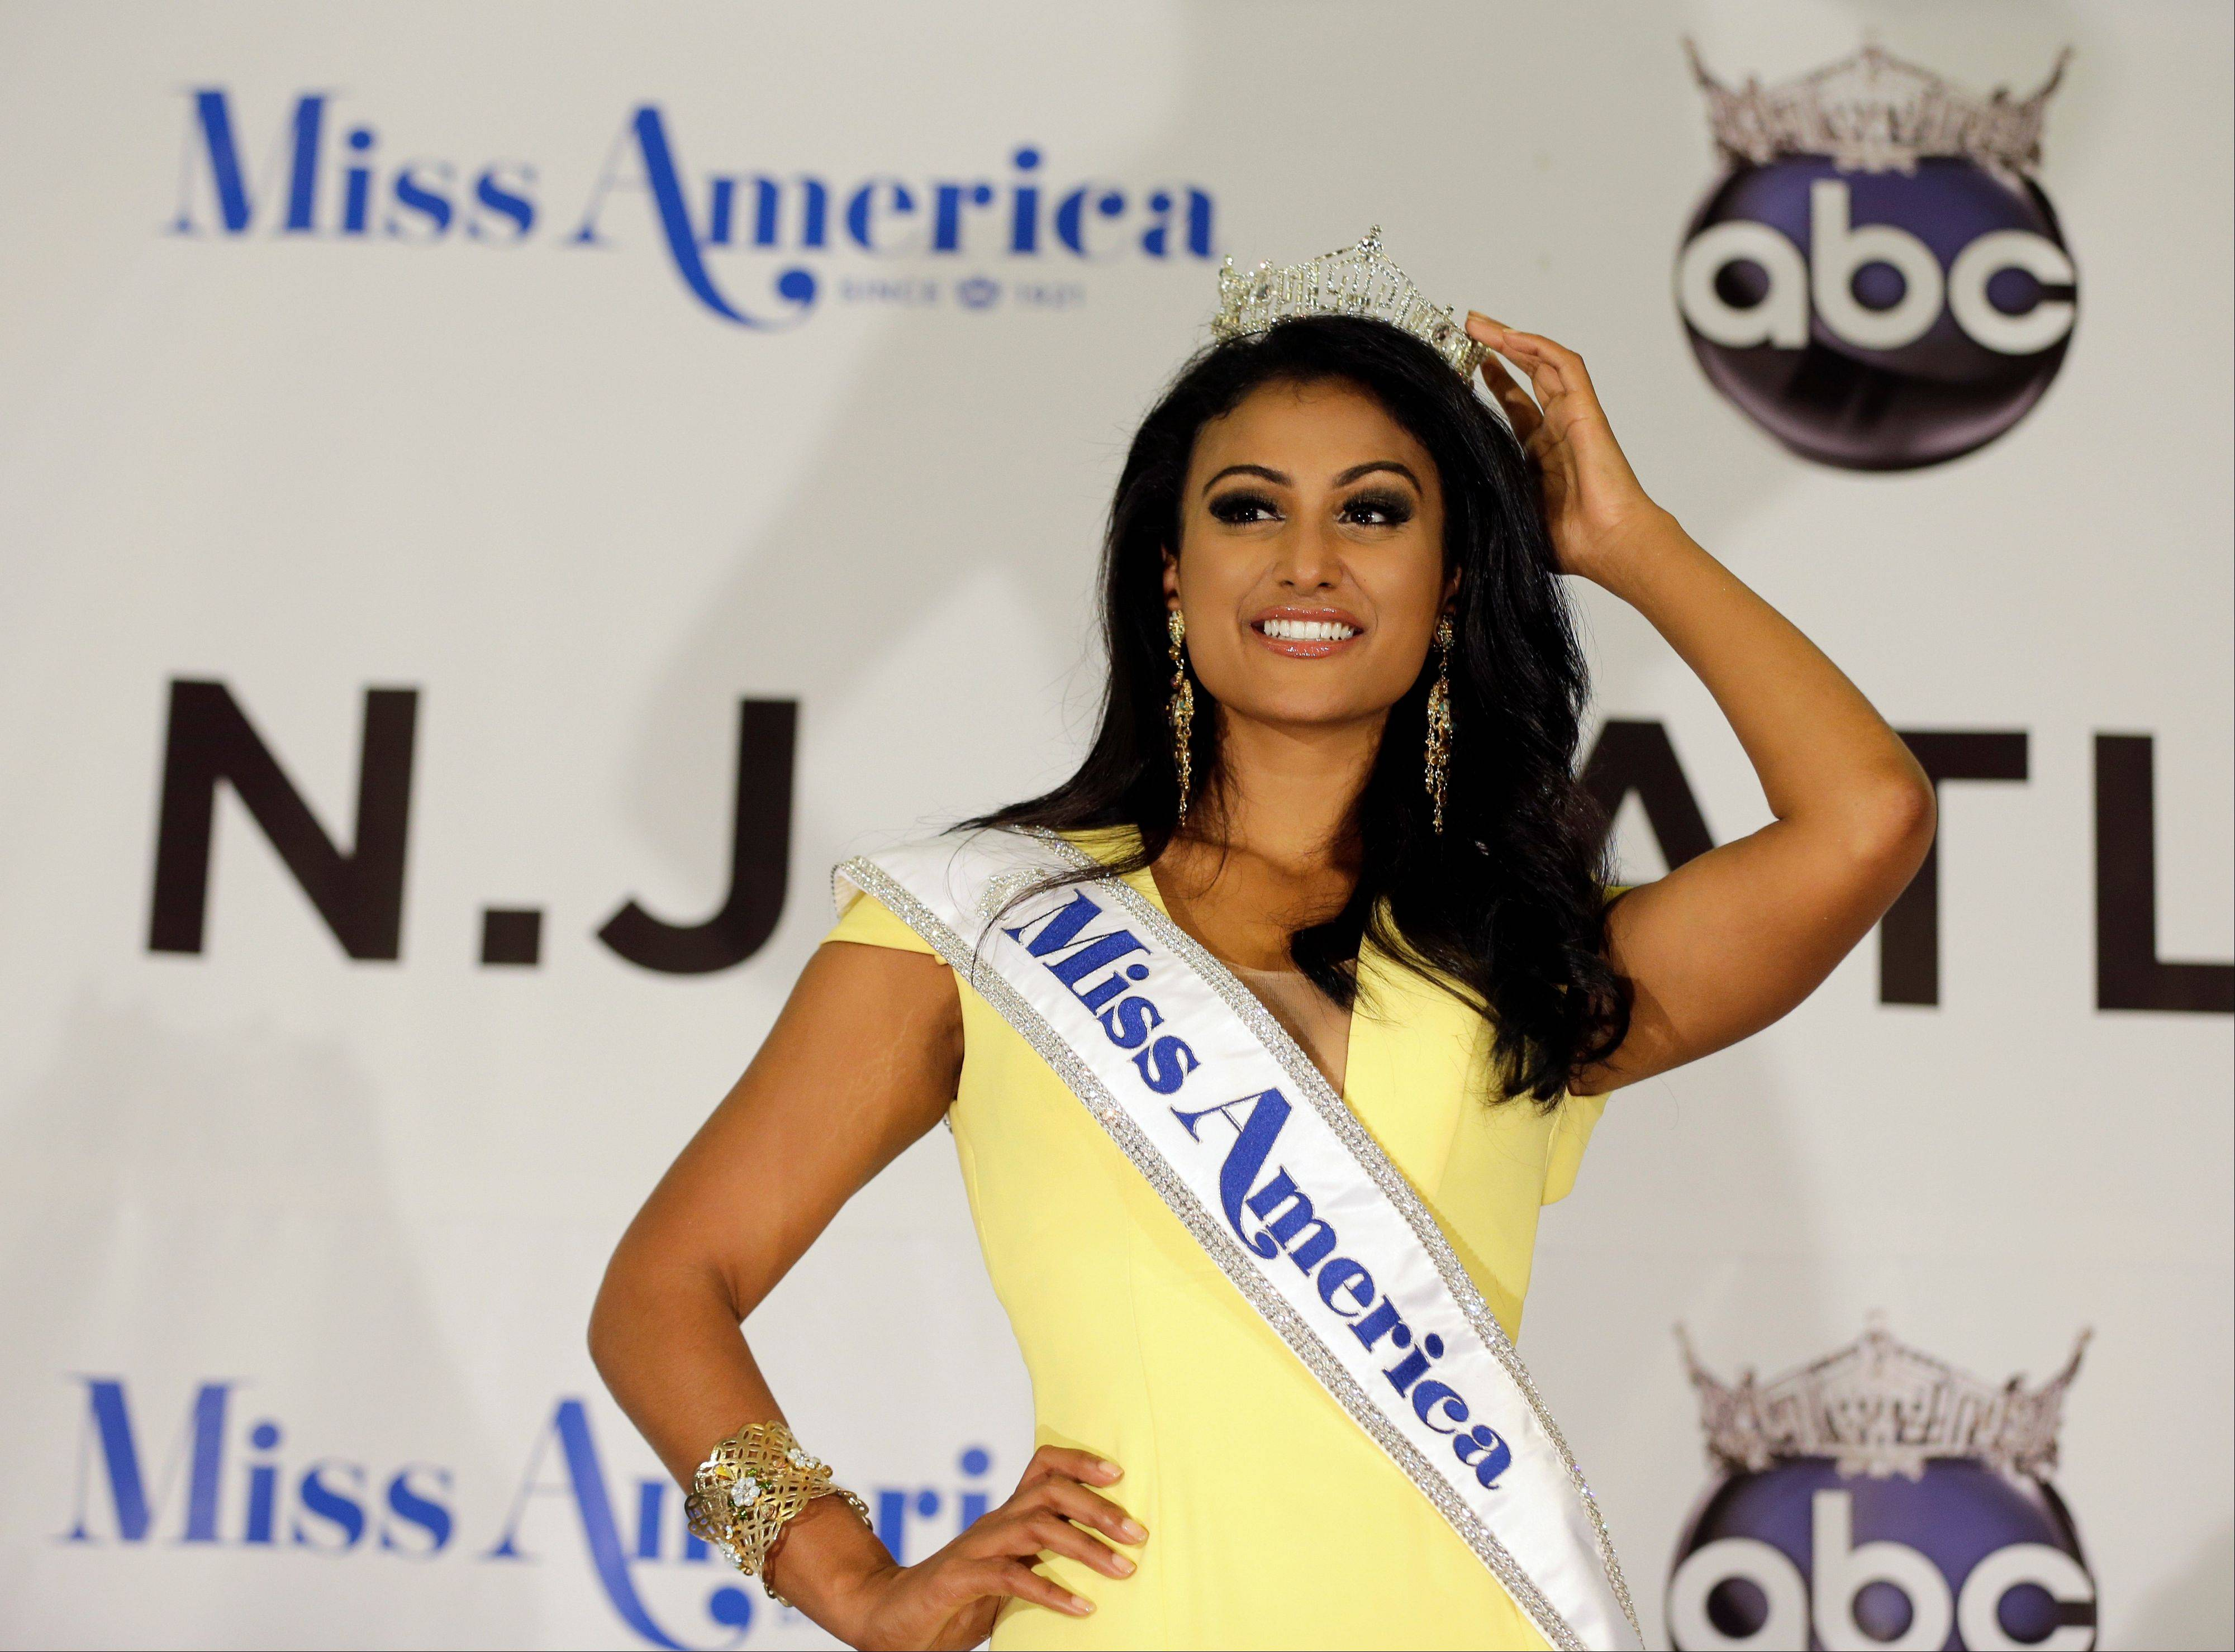 Indian Miss America resonates as symbol of change